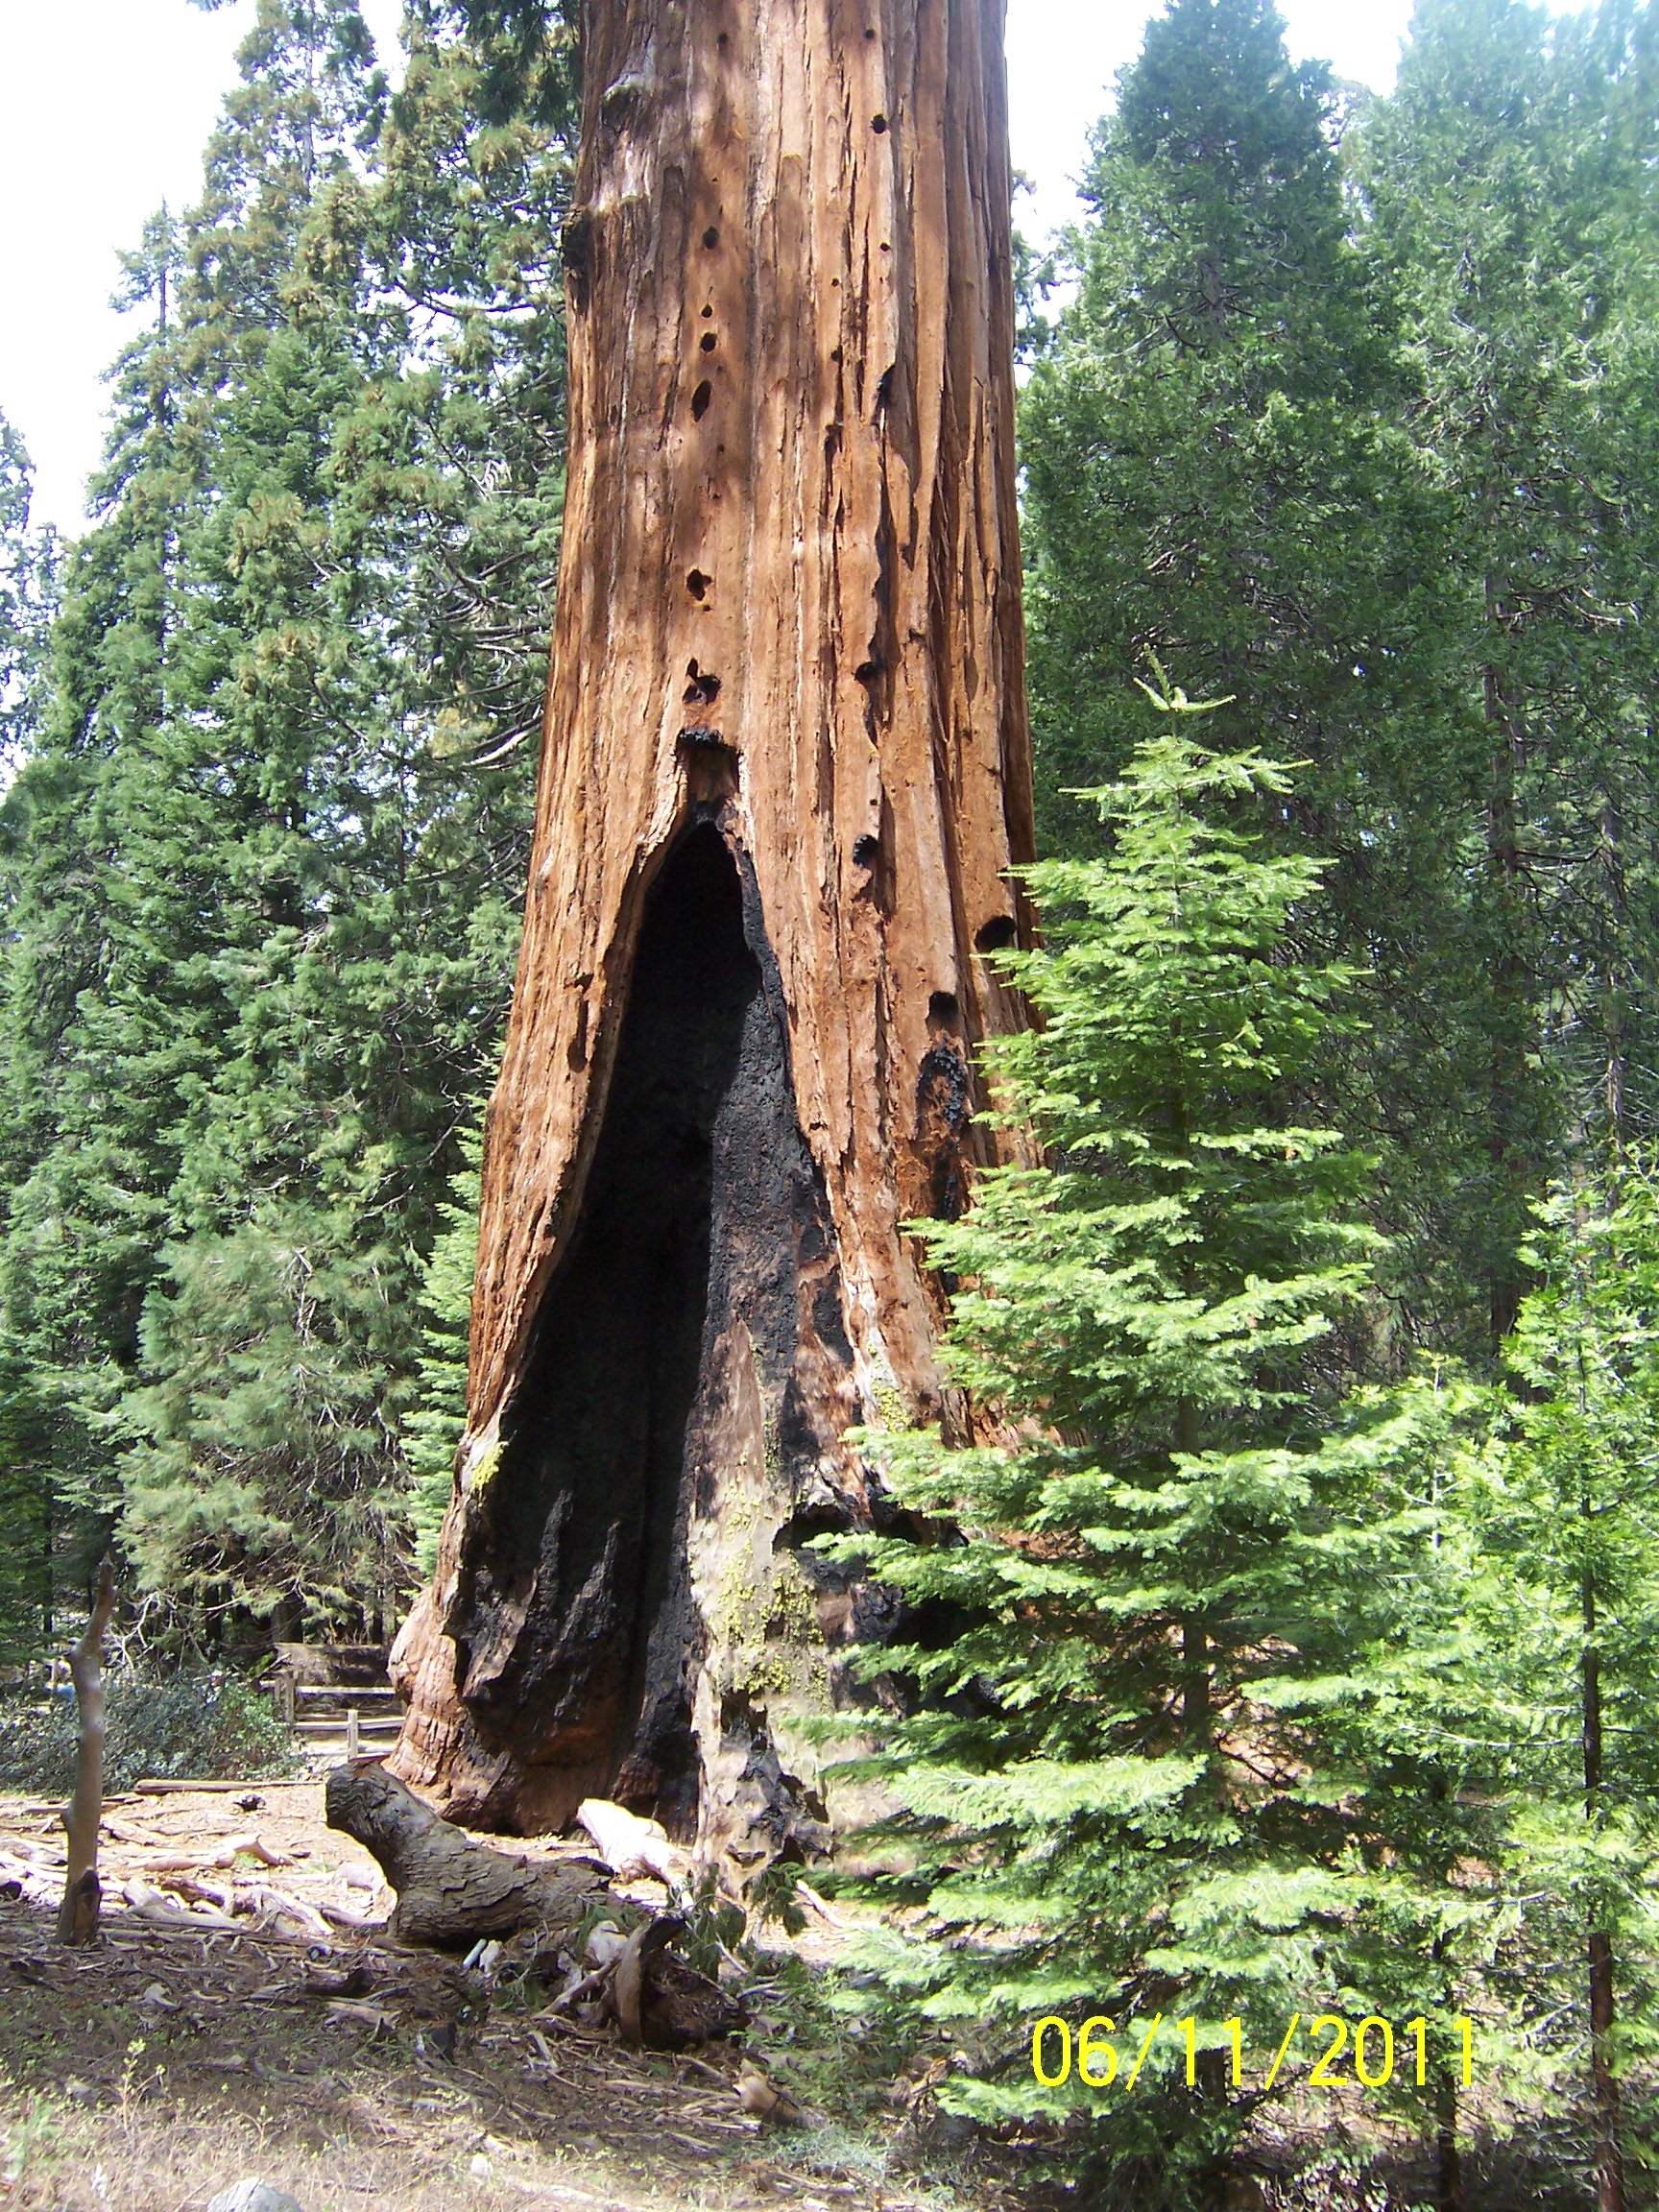 USED Sequoia fire scar through tree (C)